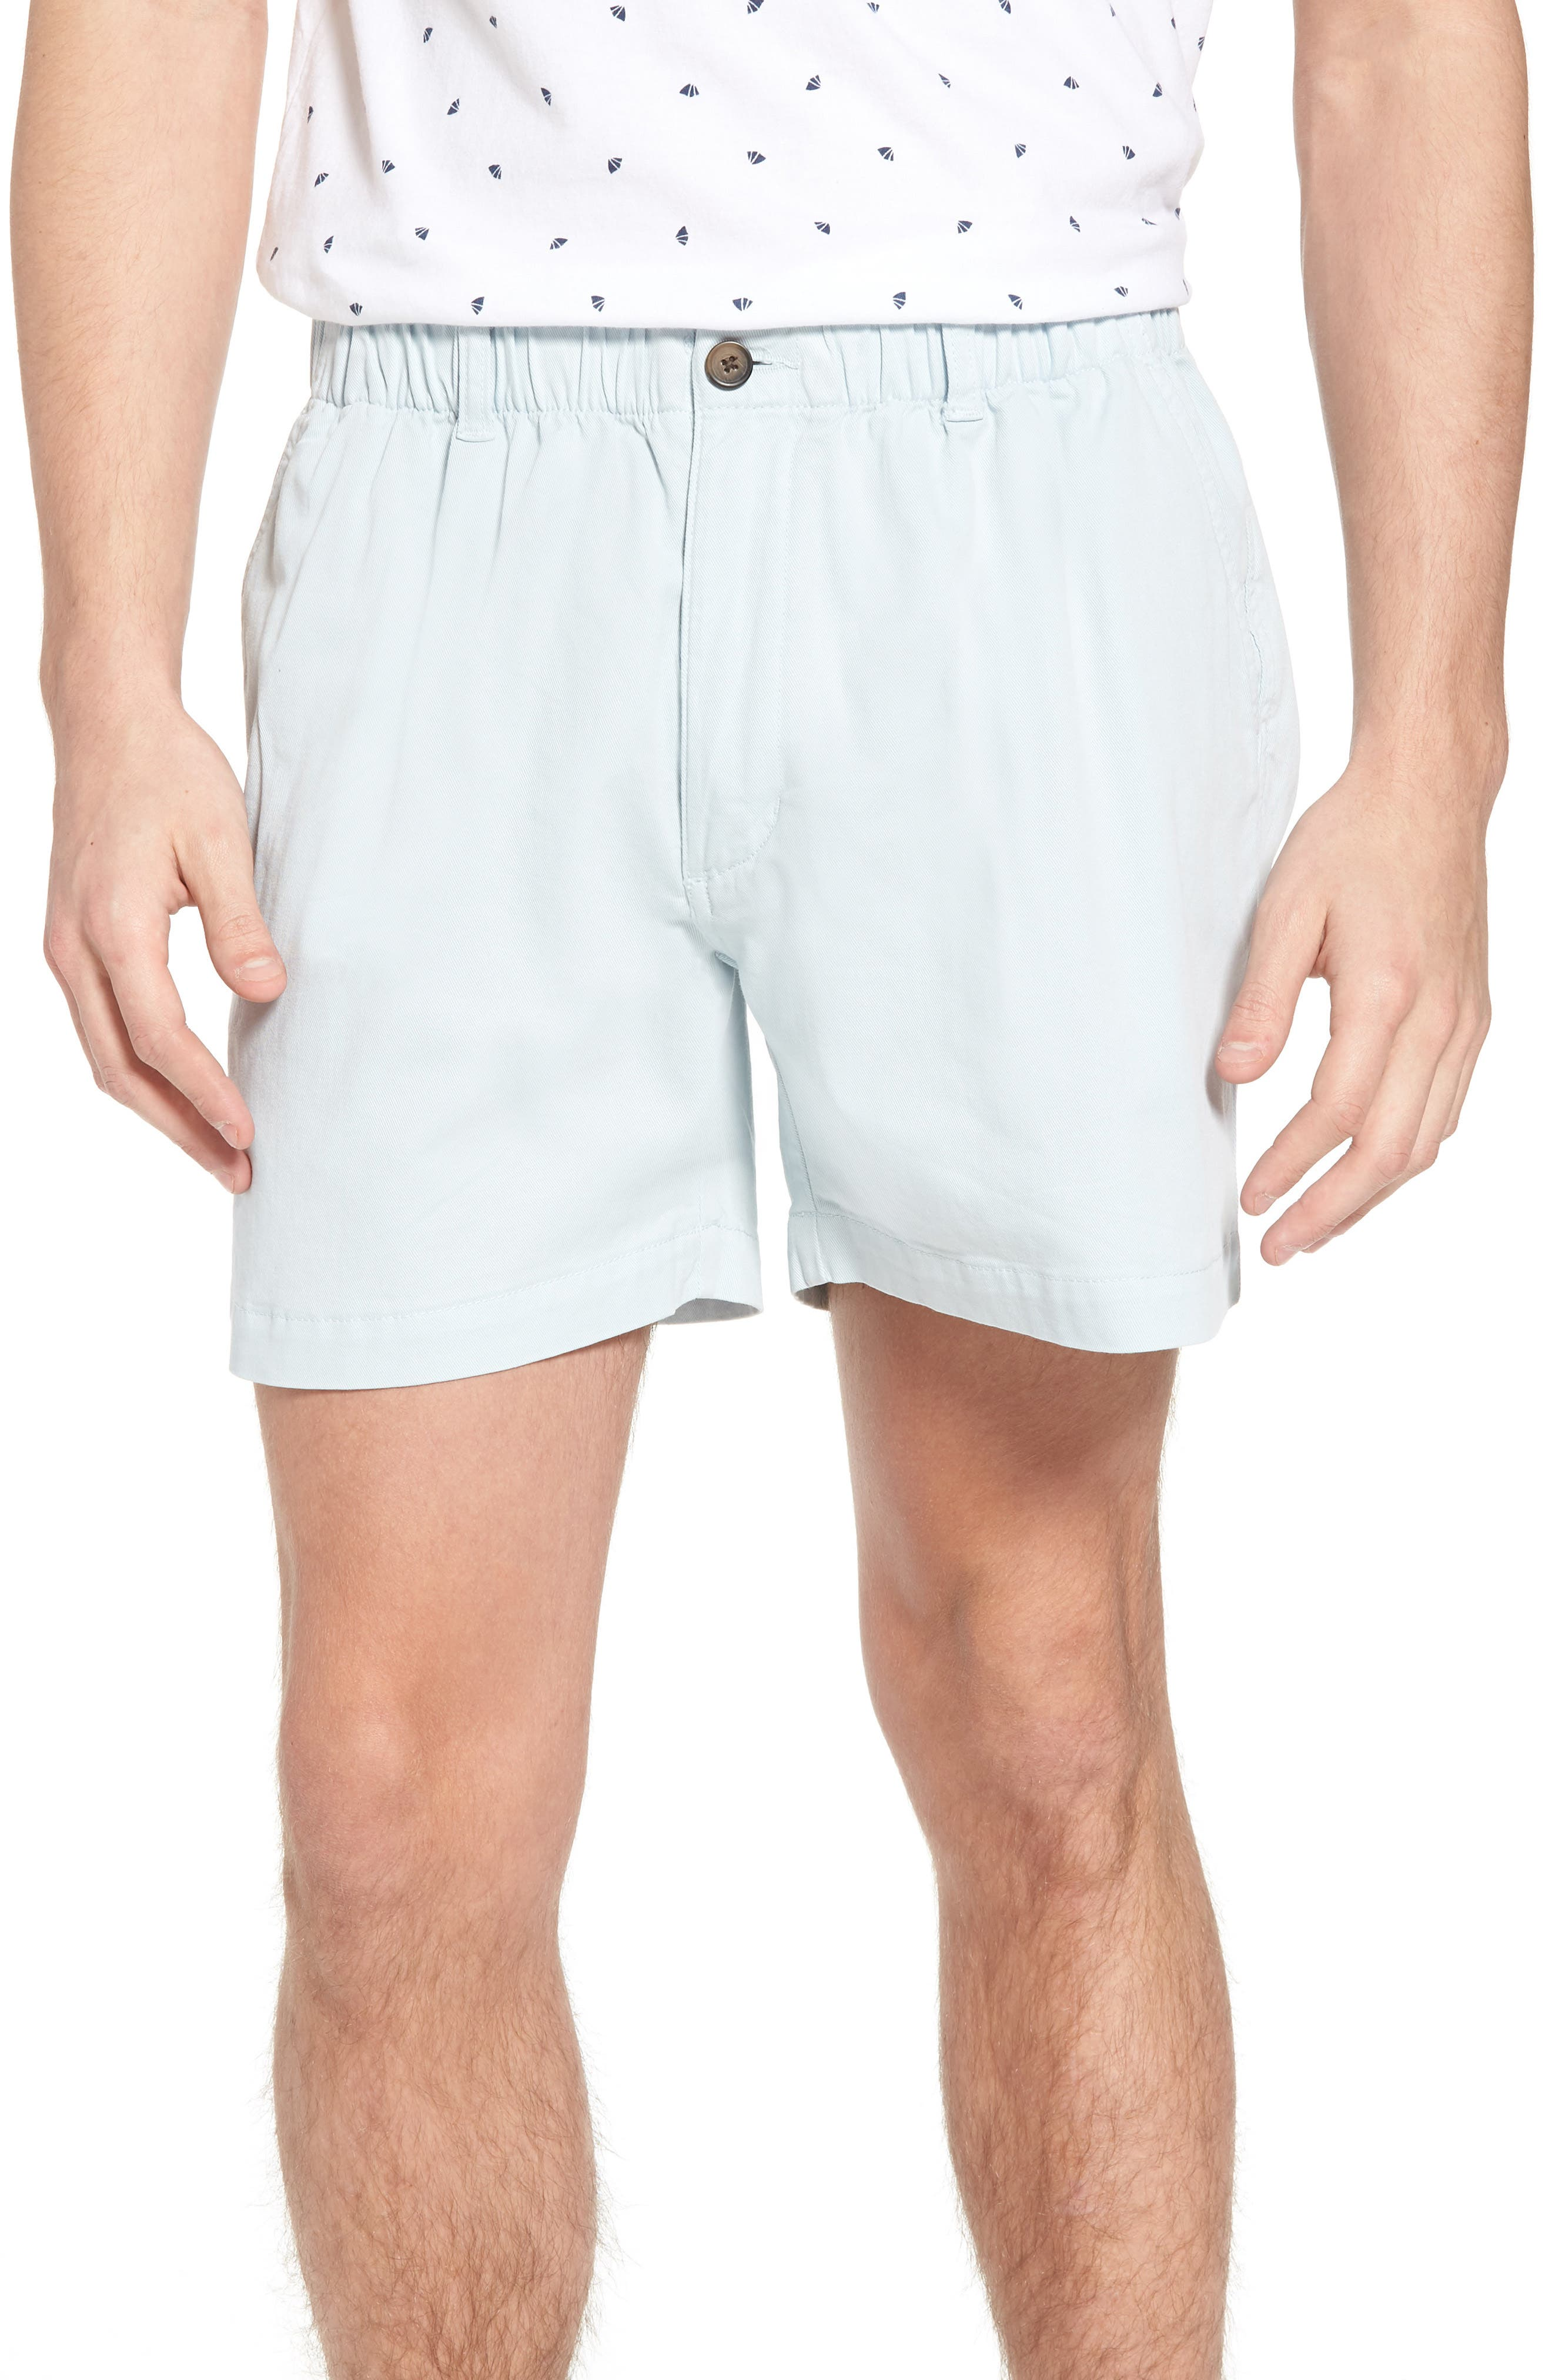 Snappers Elastic Waist 5.5 Inch Stretch Shorts,                             Main thumbnail 1, color,                             Sky